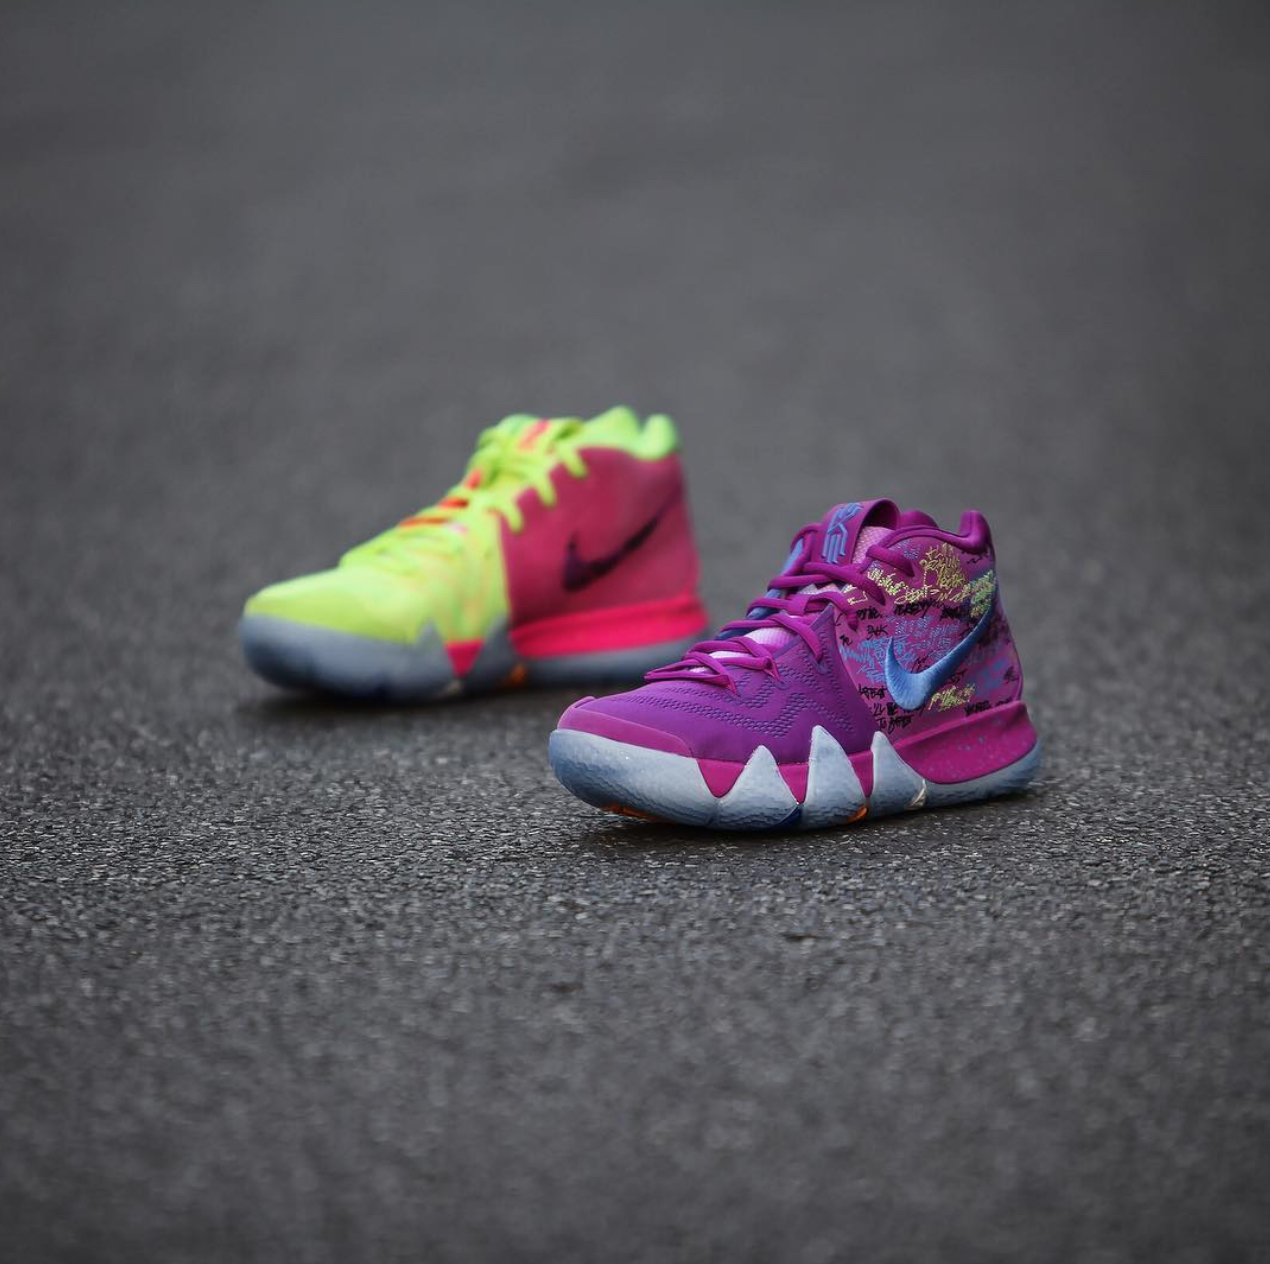 info for 2b5e6 093b9 nike kyrie 4 confetti 22 - WearTesters